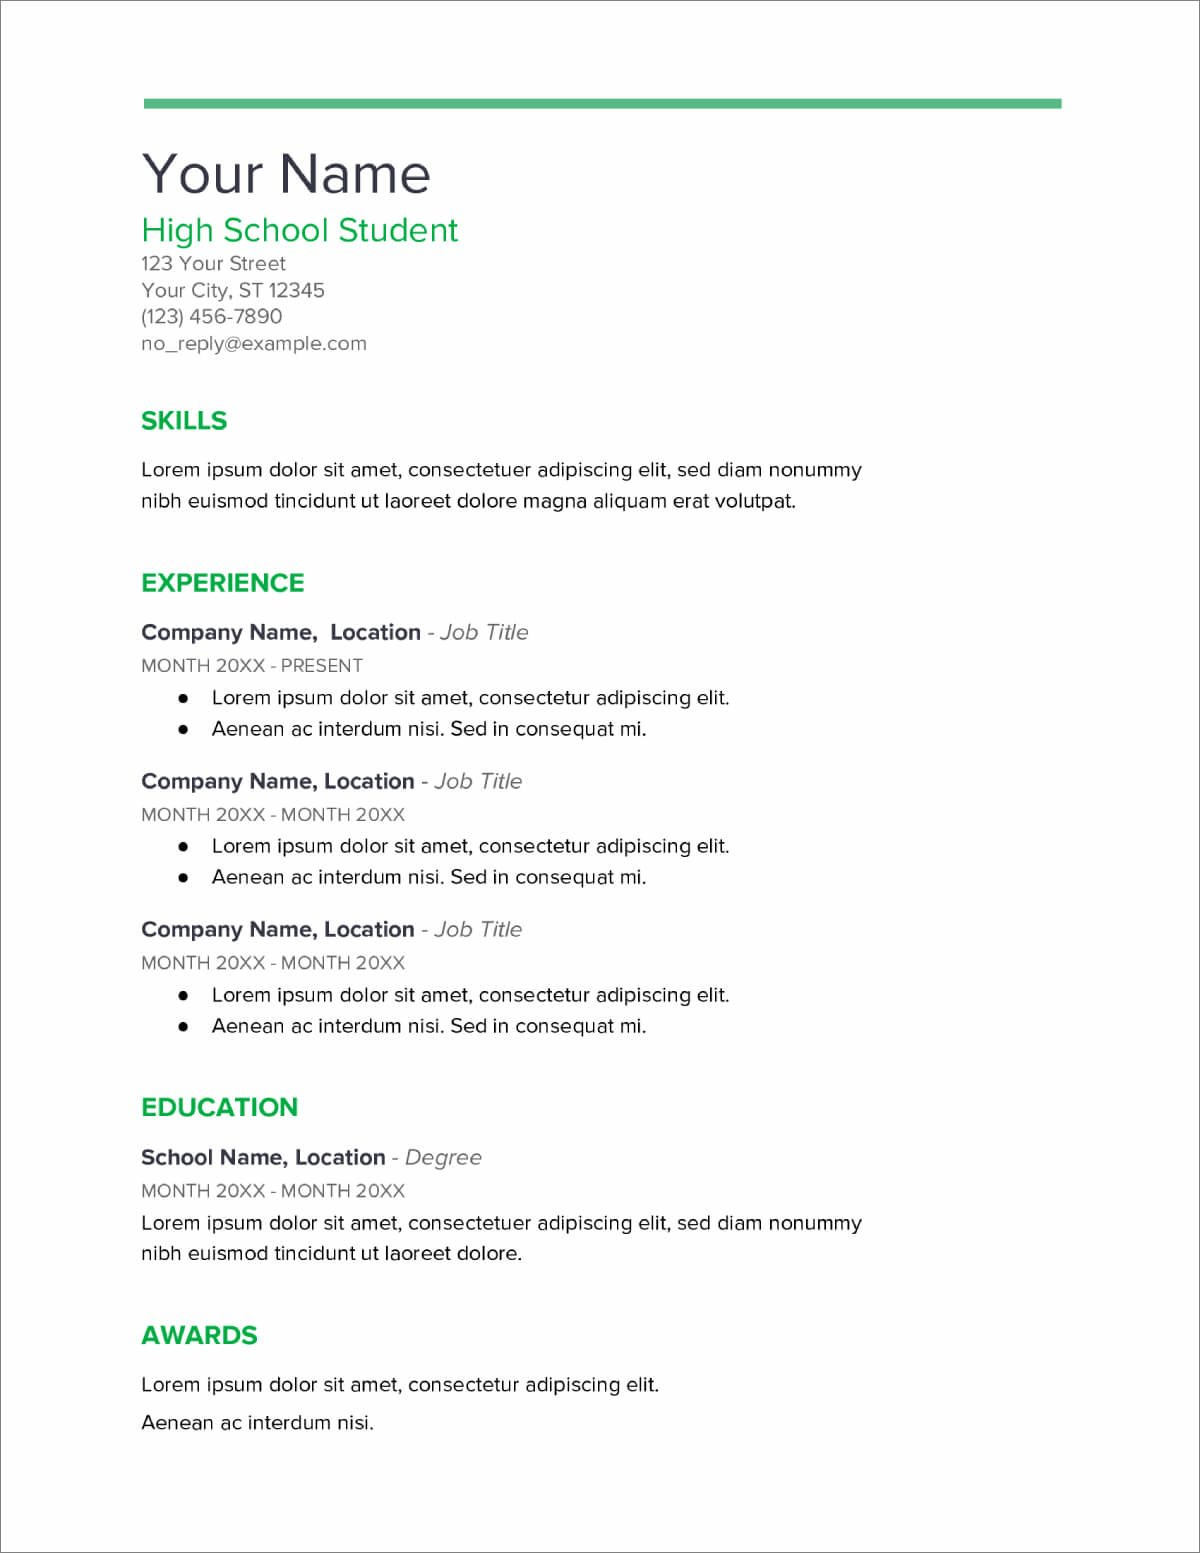 high school resume templates now job for students center manager sample lyft driver Resume A Job Resume For High School Students